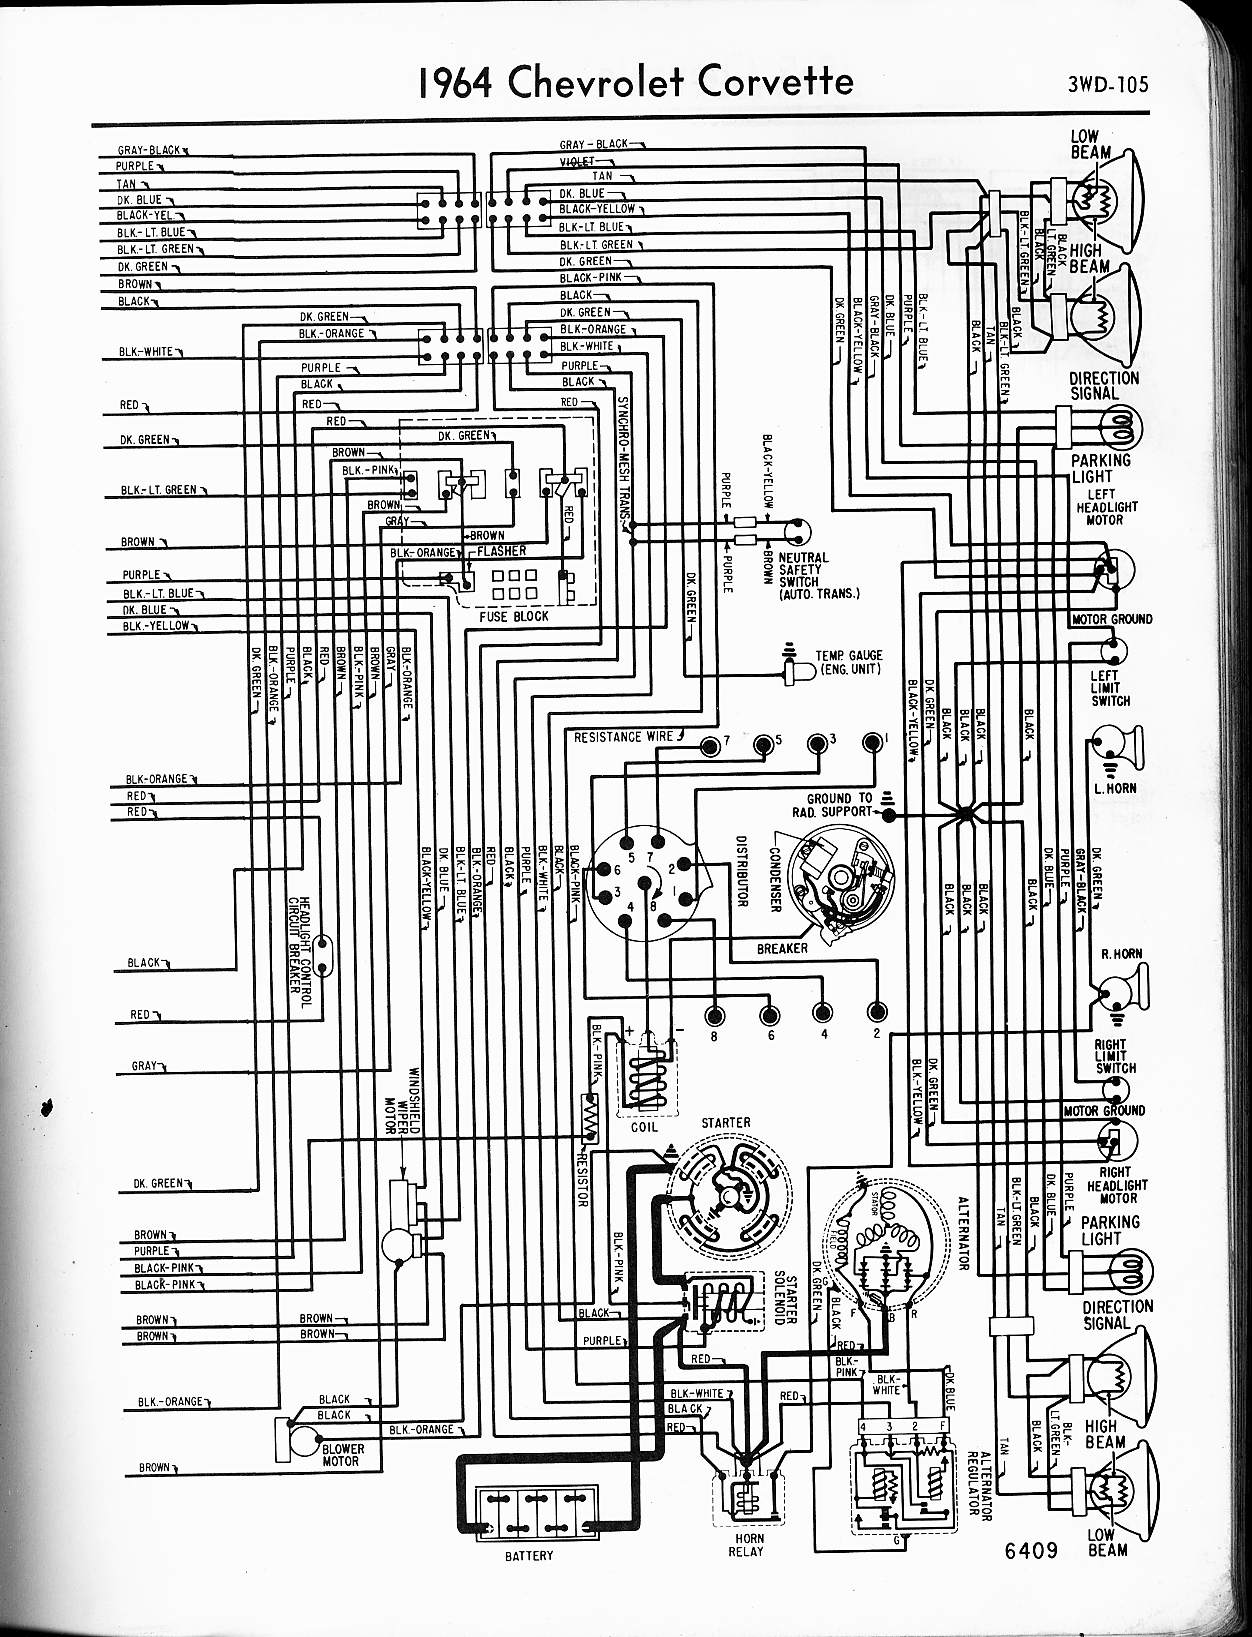 MWireChev64_3WD 105 1964 impala wiring diagram efcaviation com 64 impala tail light wiring diagram at webbmarketing.co